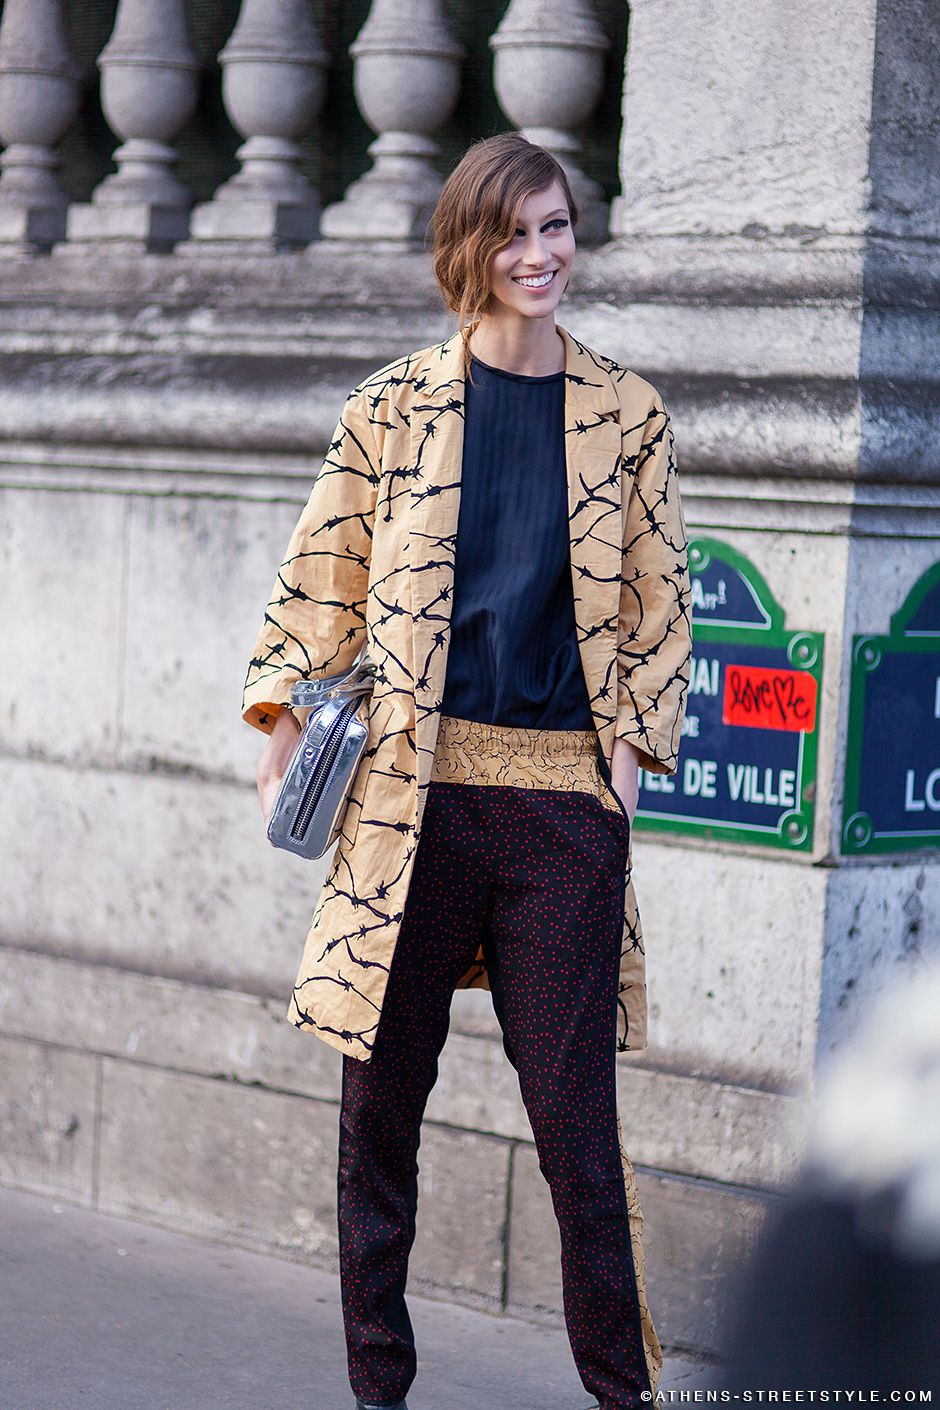 one more time in the name of that topper. #AlanaZimmer #offduty in Paris.